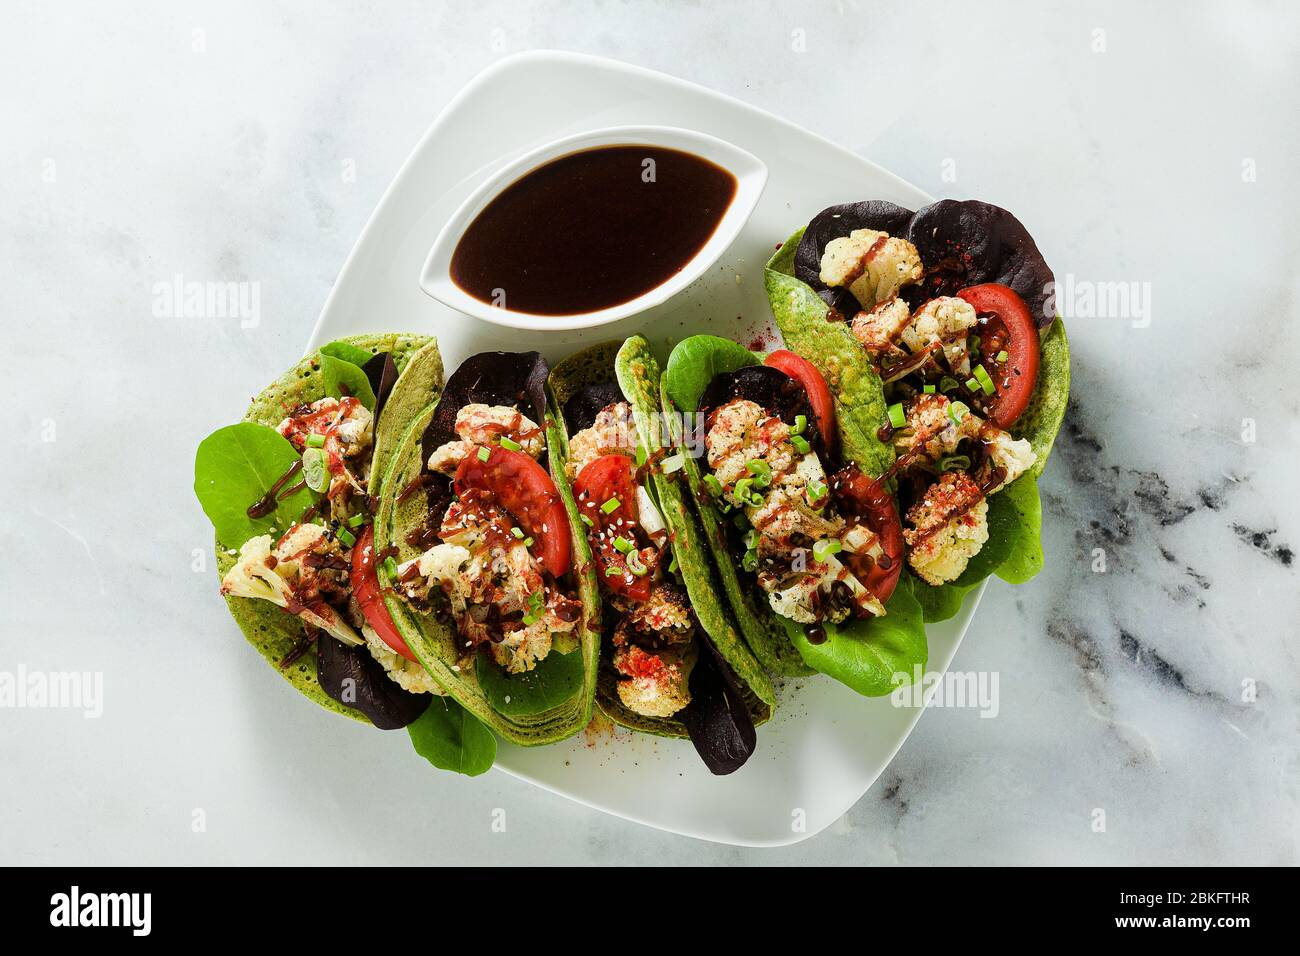 gluten-free vegan green tachos made from chickpea flour with spinach and toppings from baked cauliflower and lettuce with sweet and sour sauce based o Stock Photo